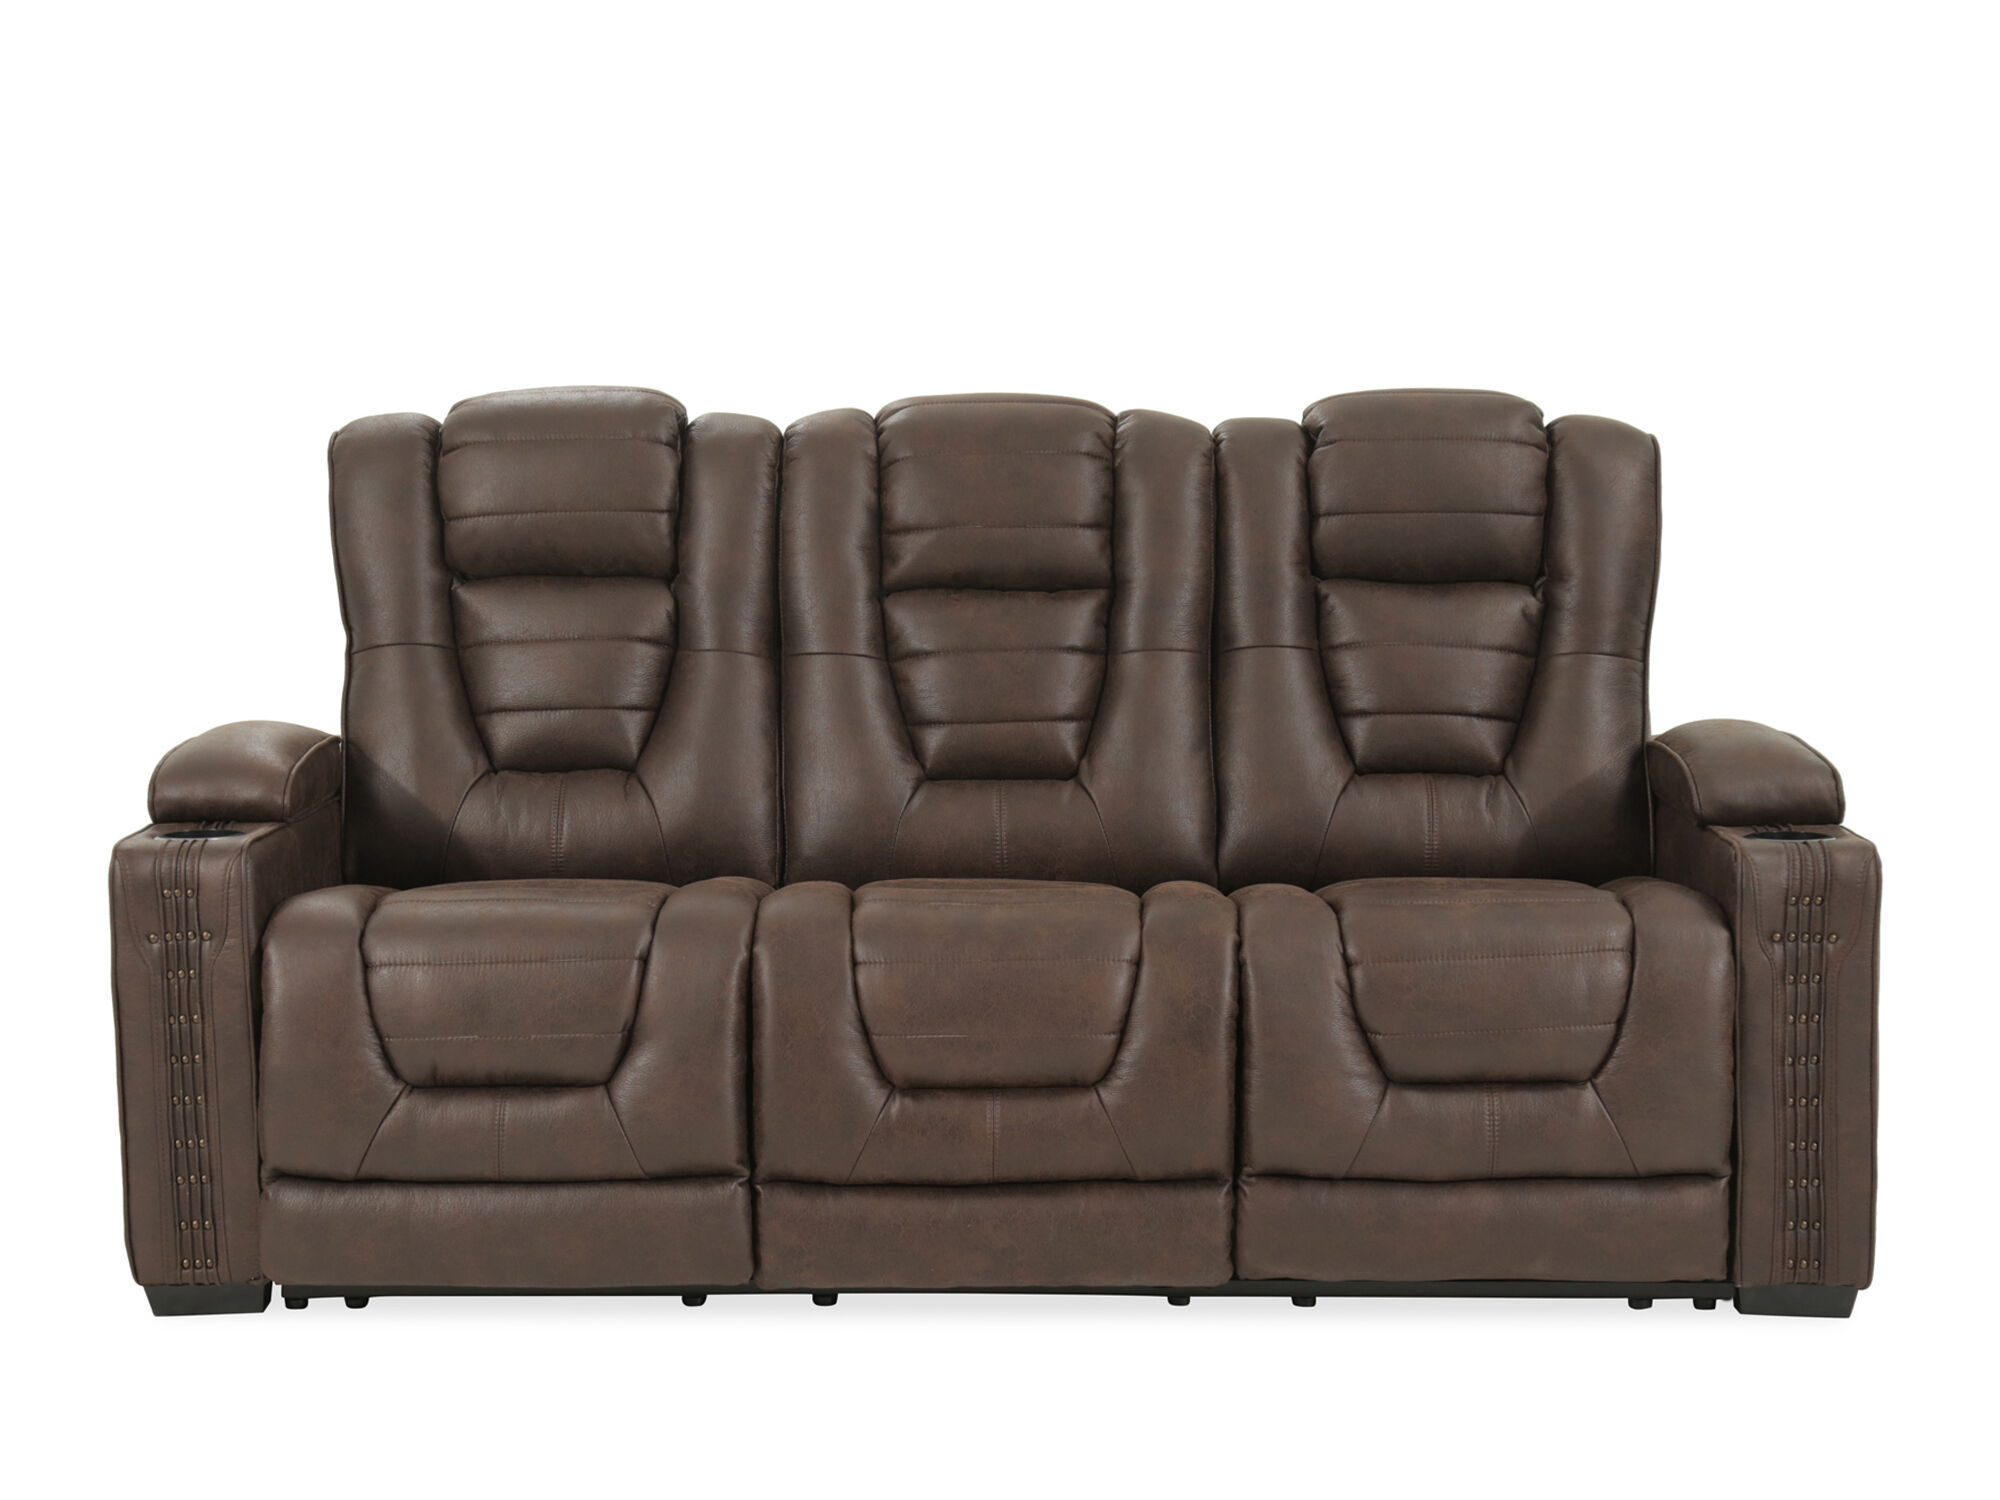 Power Reclining Microfiber 84 Sofa in Brown Mathis Brothers